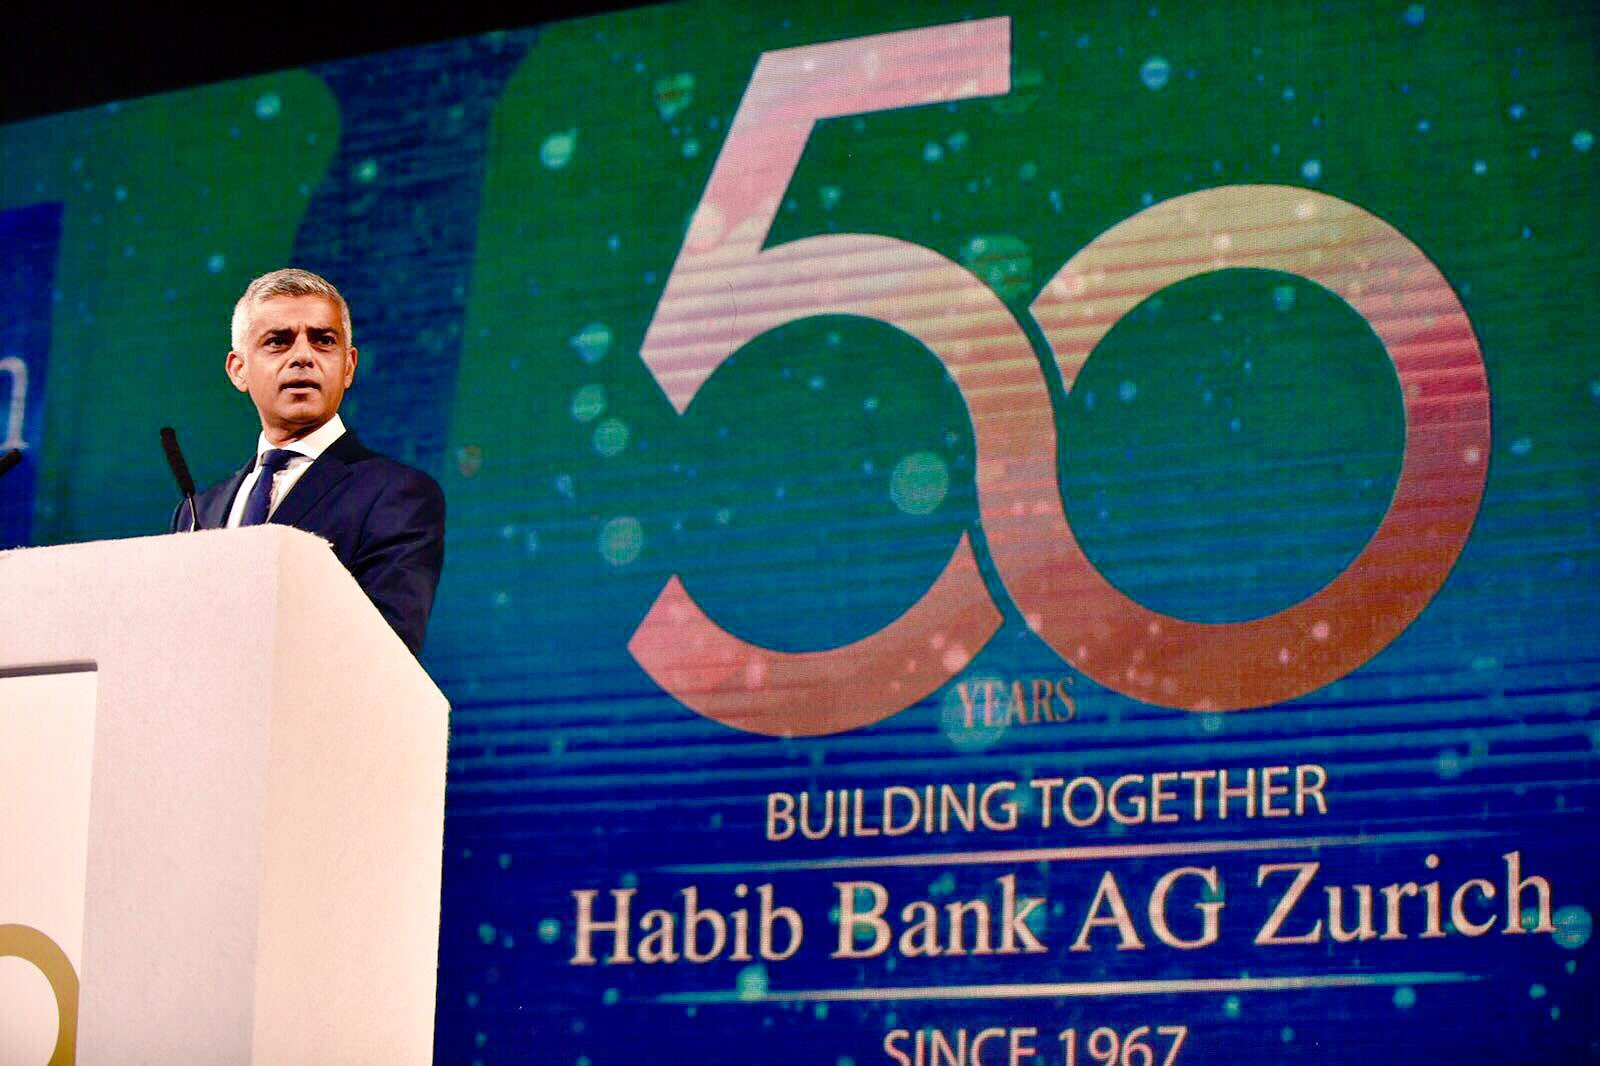 Delighted to speak at Habib Bank AG Zurich tonight and celebrate their 50 years of banking https://t.co/lTQFf6hmCZ